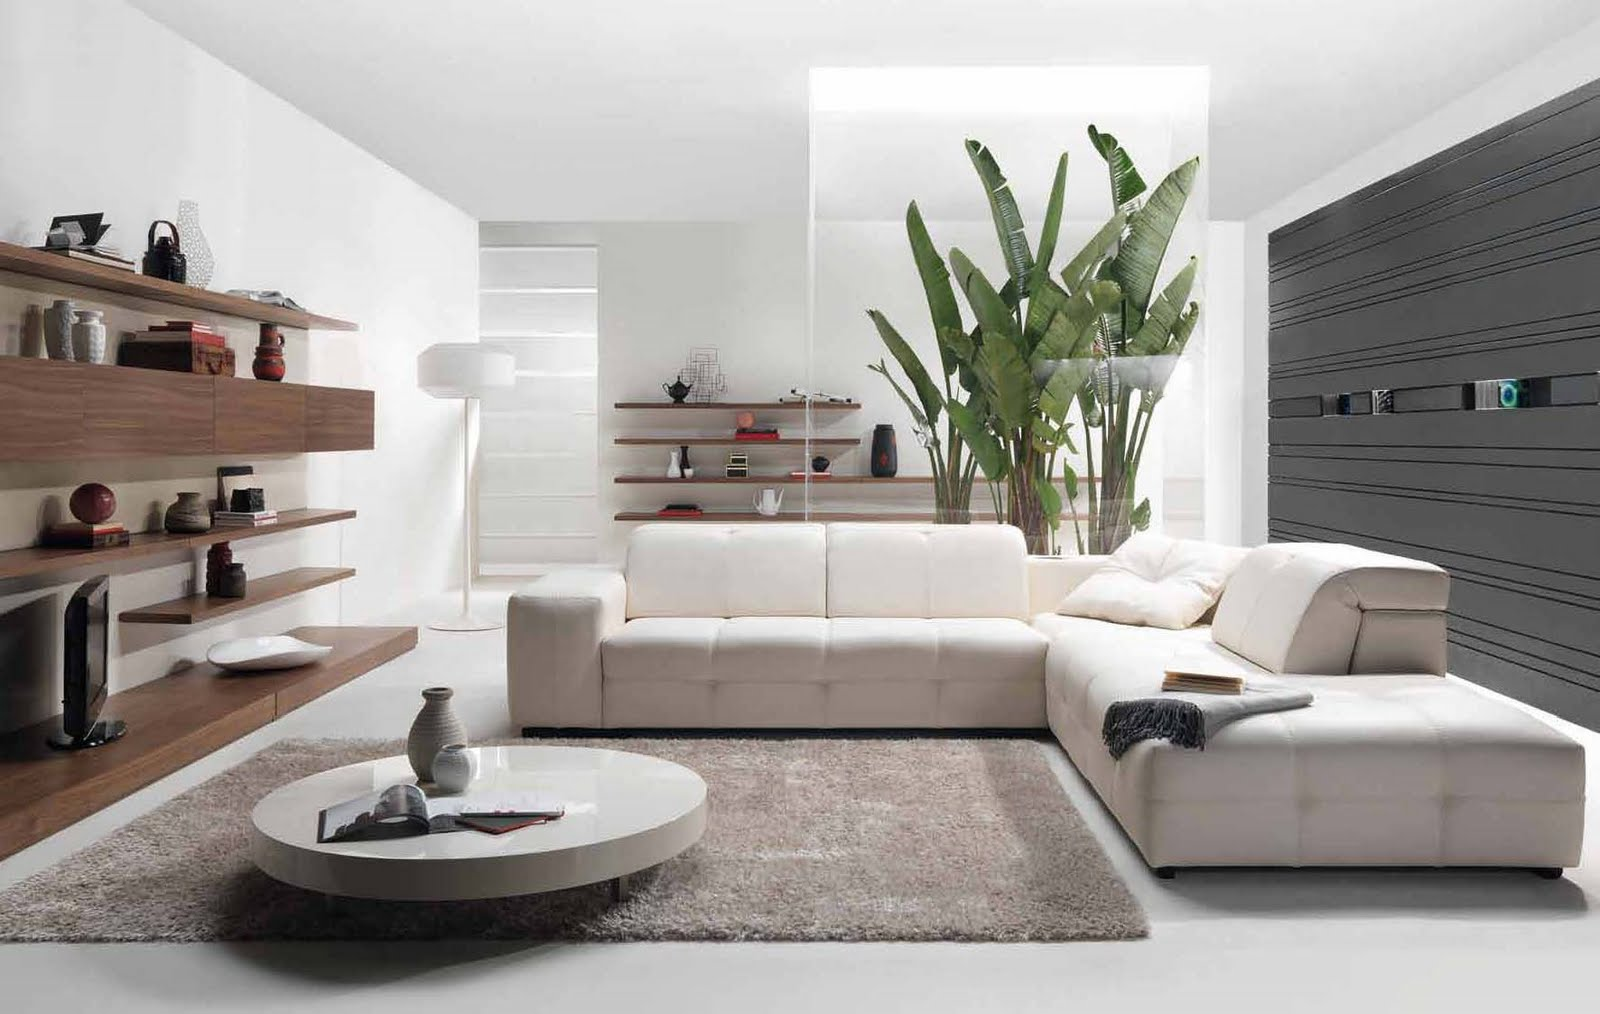 Future house design modern living room interior design styles 2010 by natuzzi - Modern interior design for living room ...